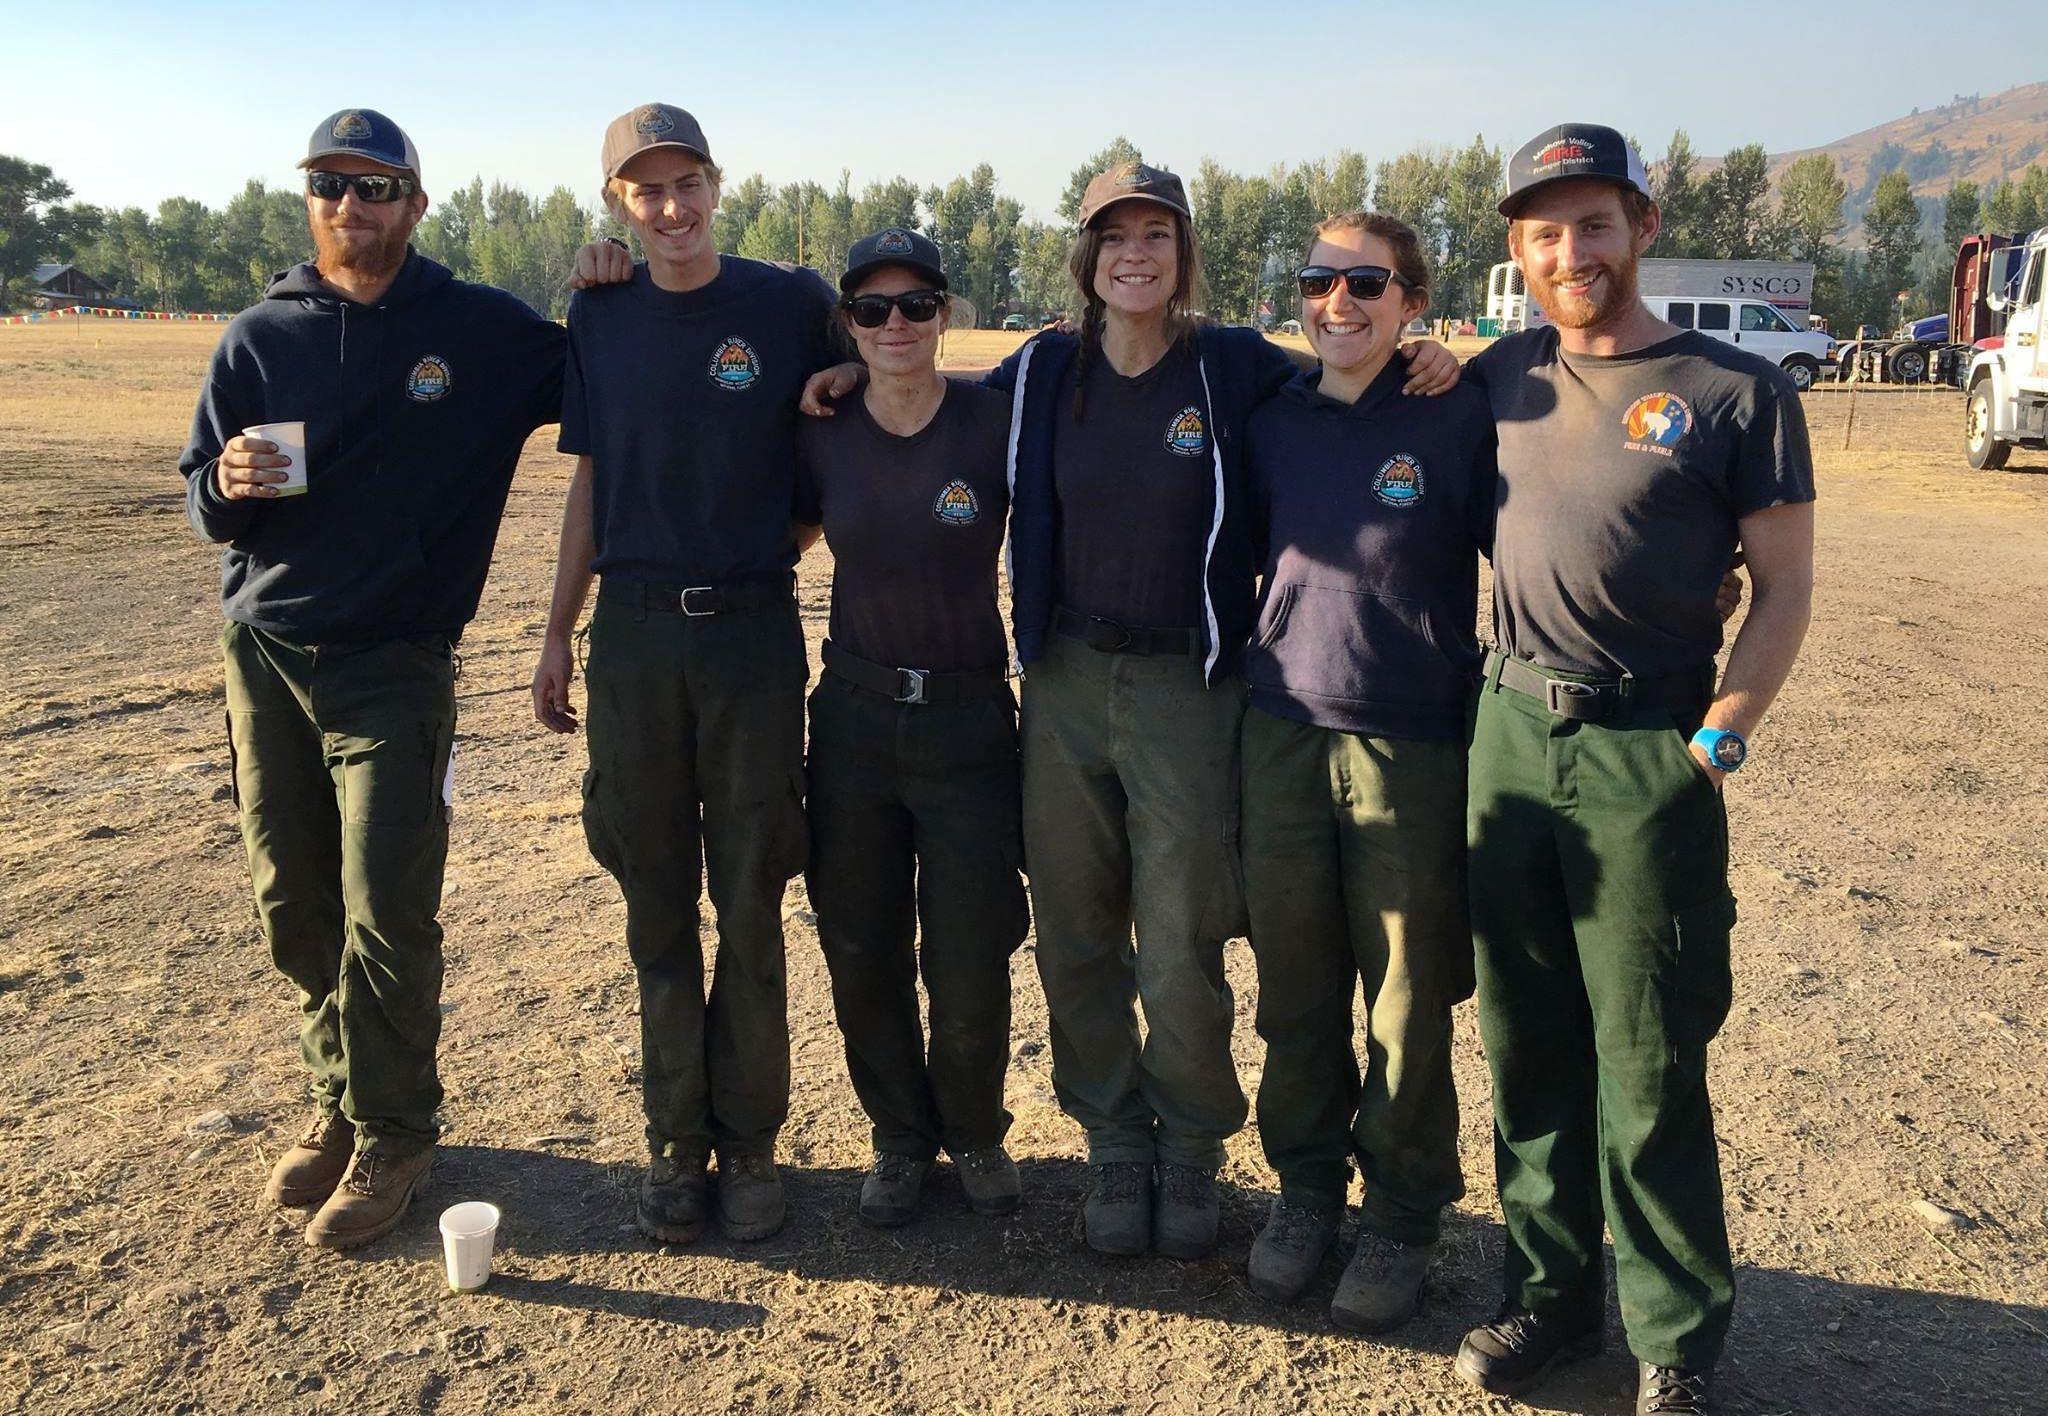 A group of six firefighters gather for a photo in an outdoor field, wearing dark green pants and dark blue uniforms.